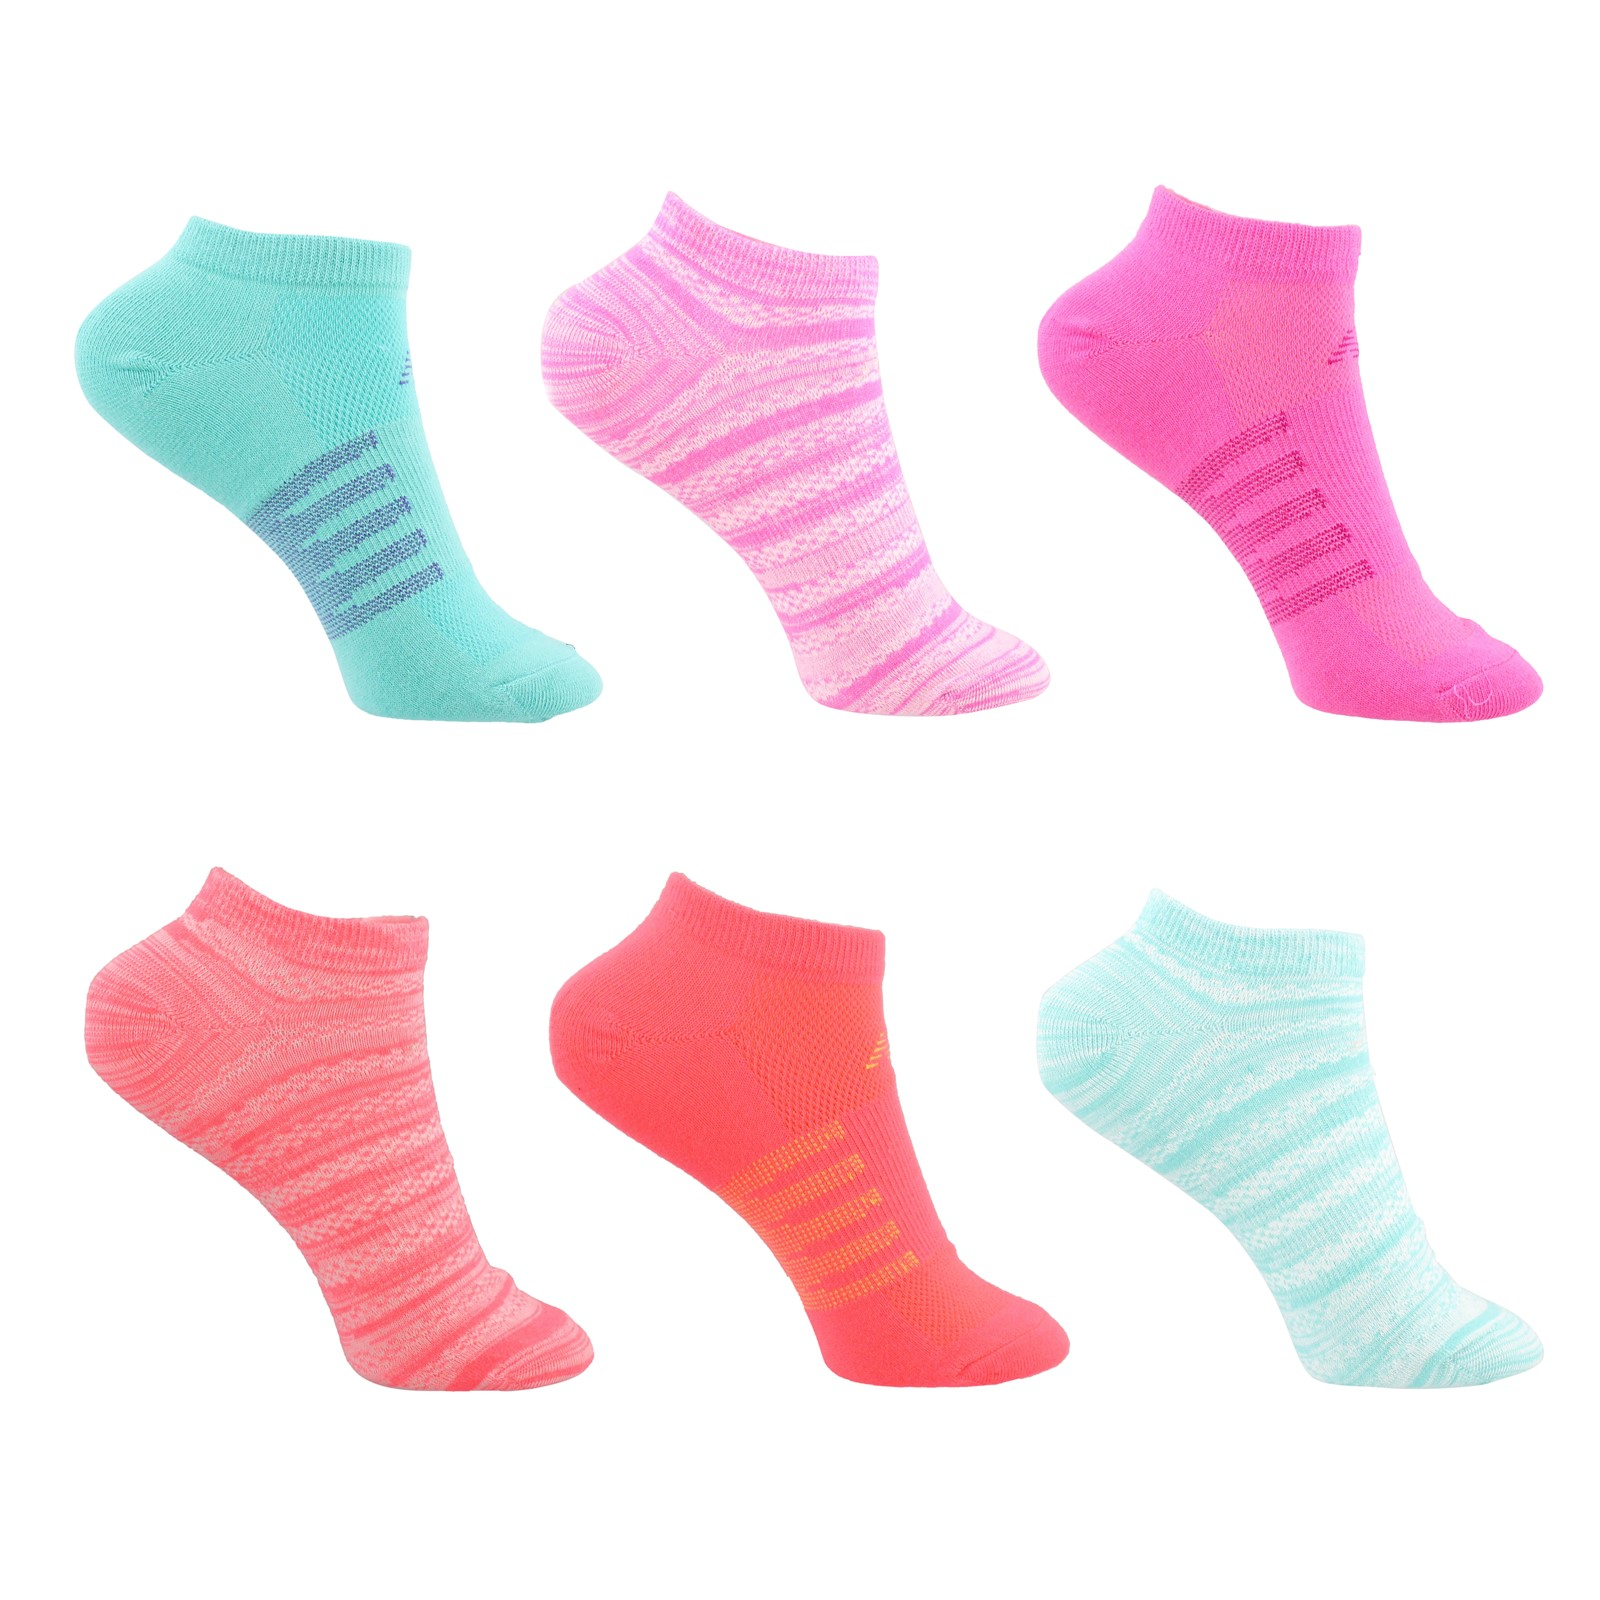 Women's New Balance, Lifestyle No Show Socks - 6 Pack